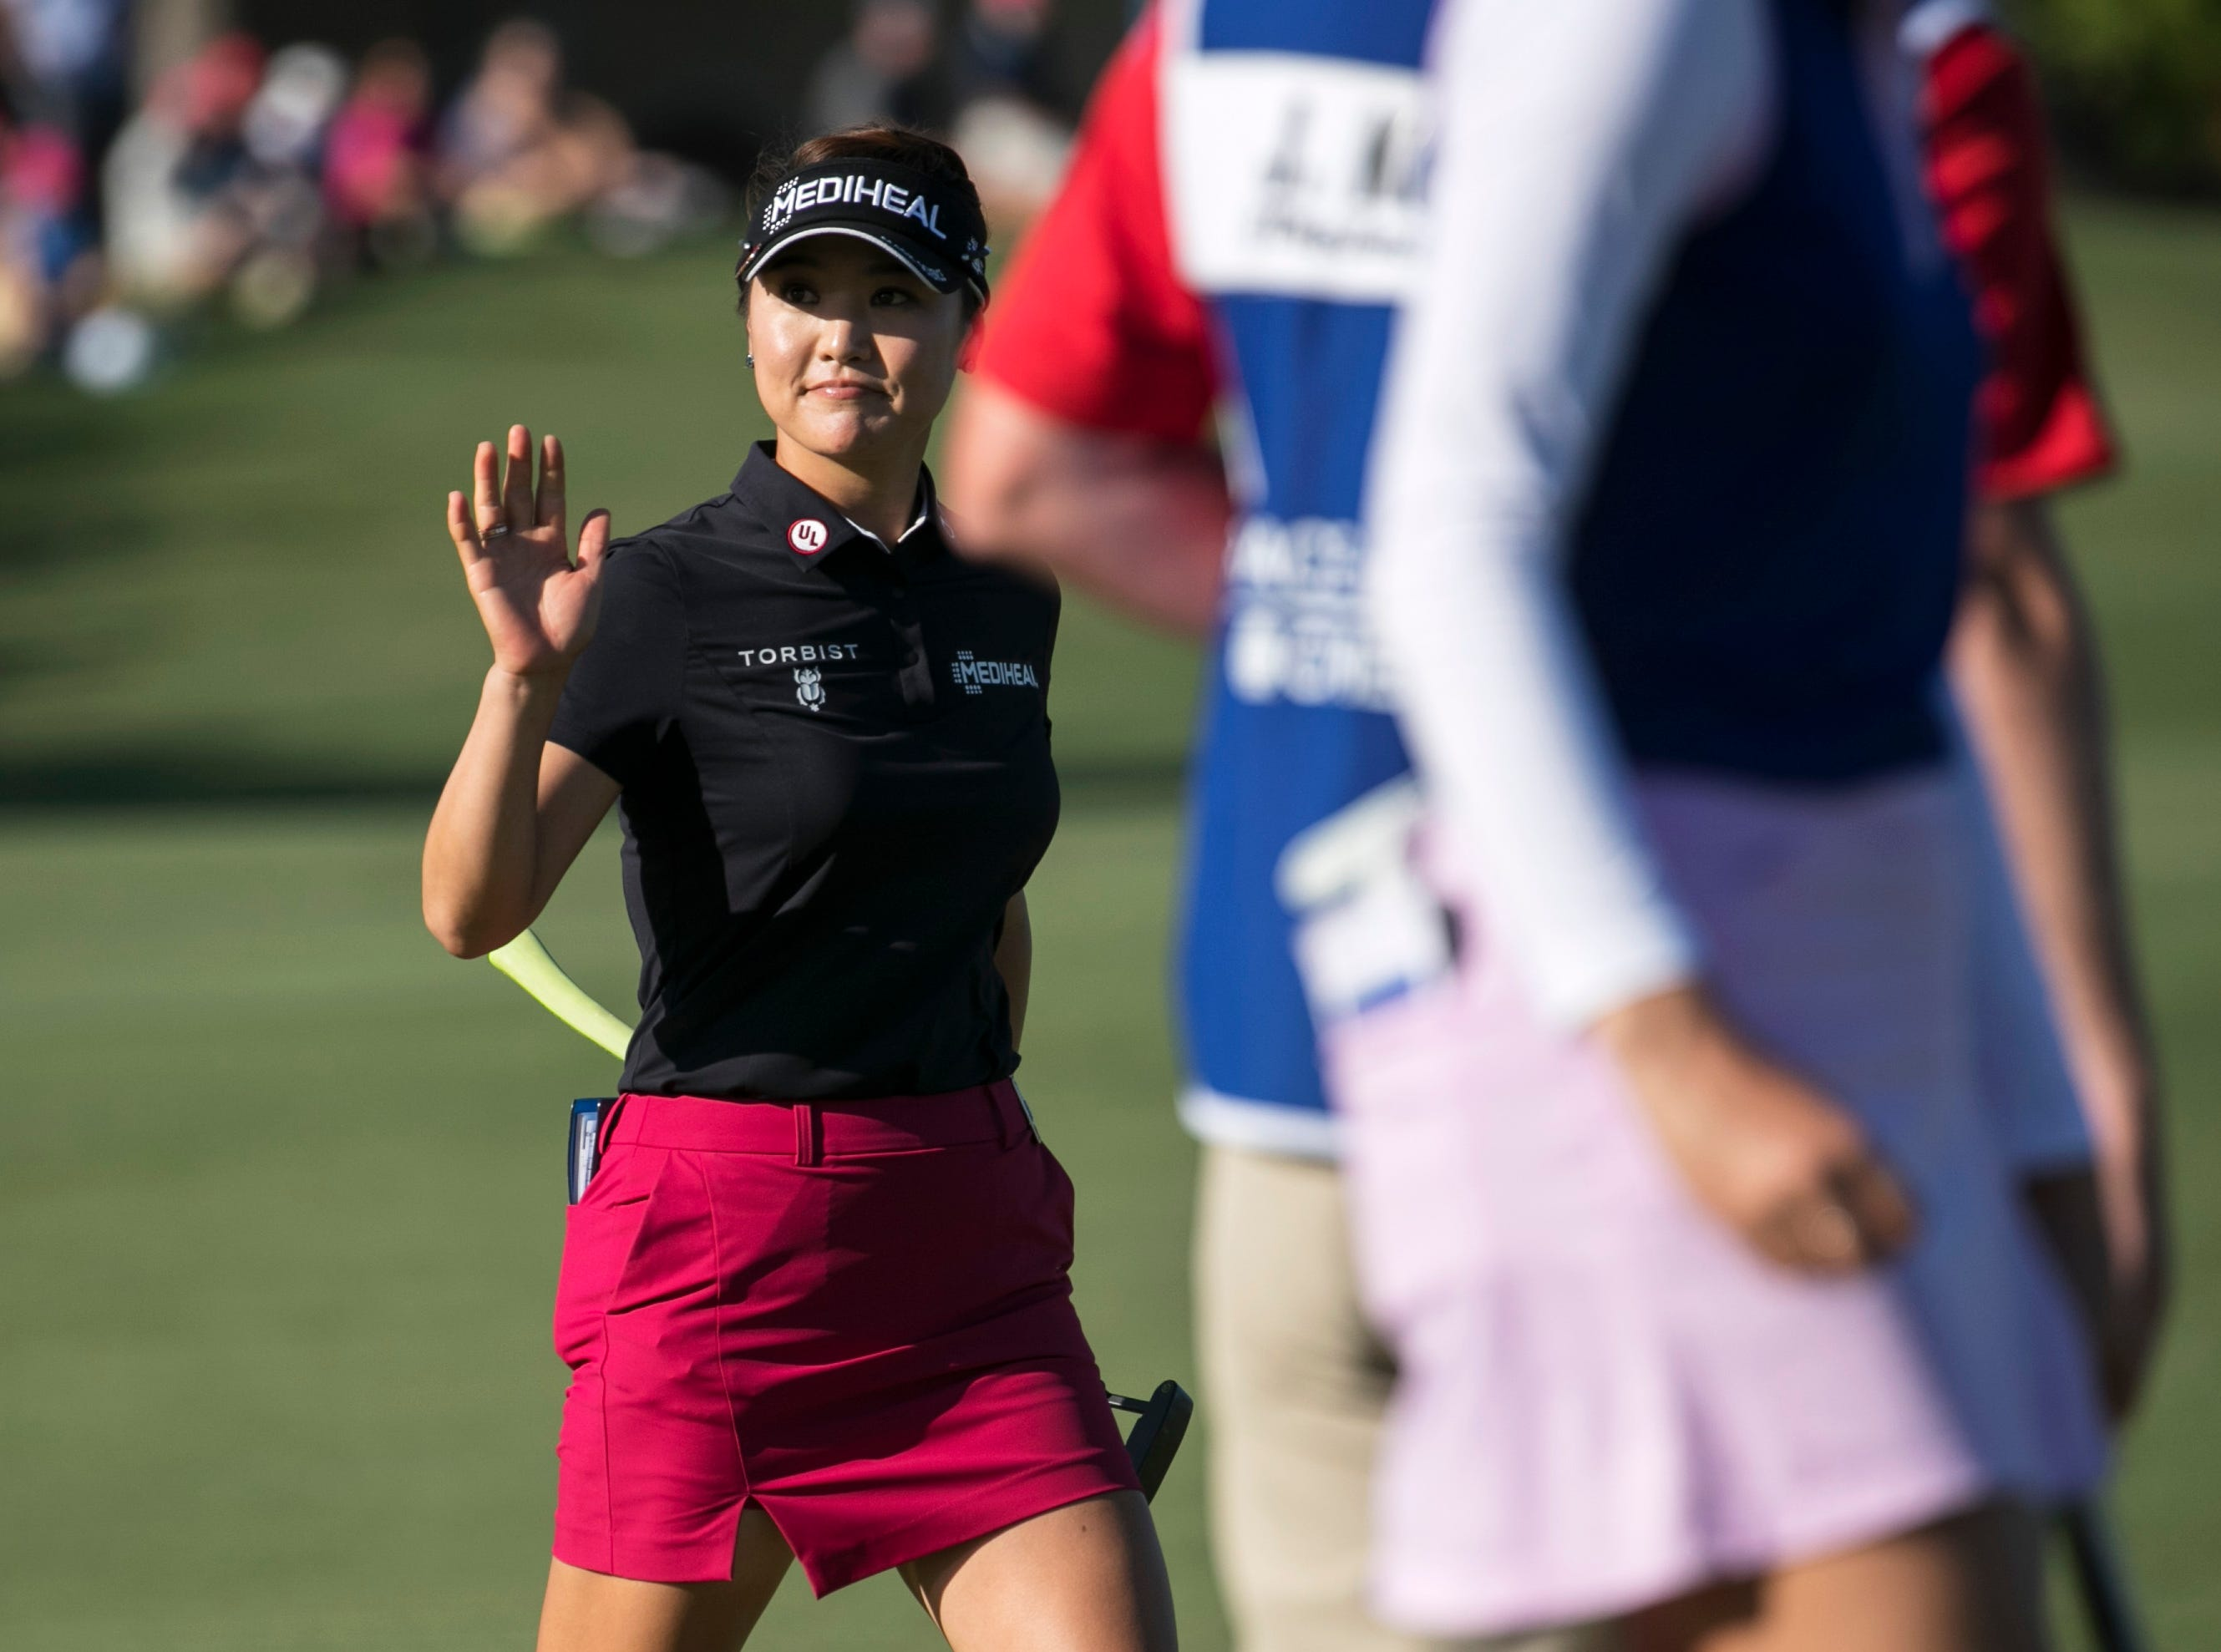 So Yeon Ryu waves to the crowd on the 18th green during the third round of the CME Group Tour Championship on Saturday, November 17, 2018, at Tiburon Golf Club in Naples.